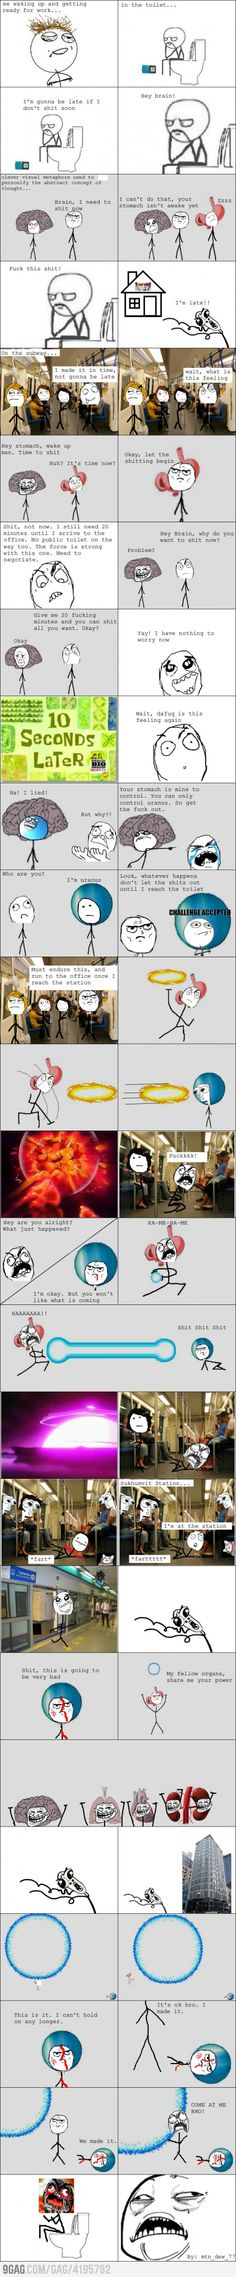 So this is what happens inside me every time I go to work : Story of Scumbag brain and Good guy uranus